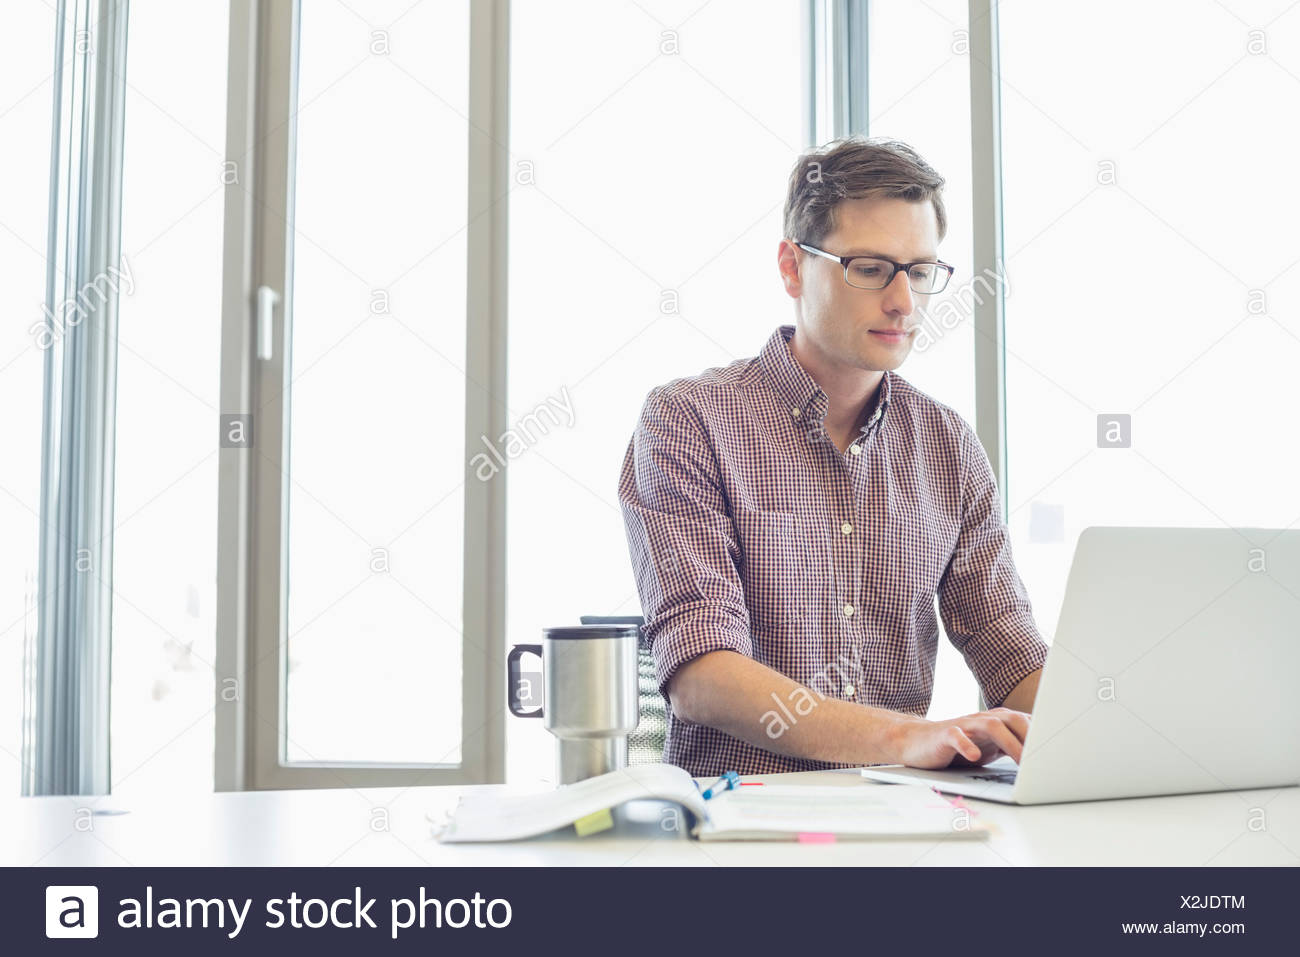 Businessman working on laptop at desk in creative office - Stock Image